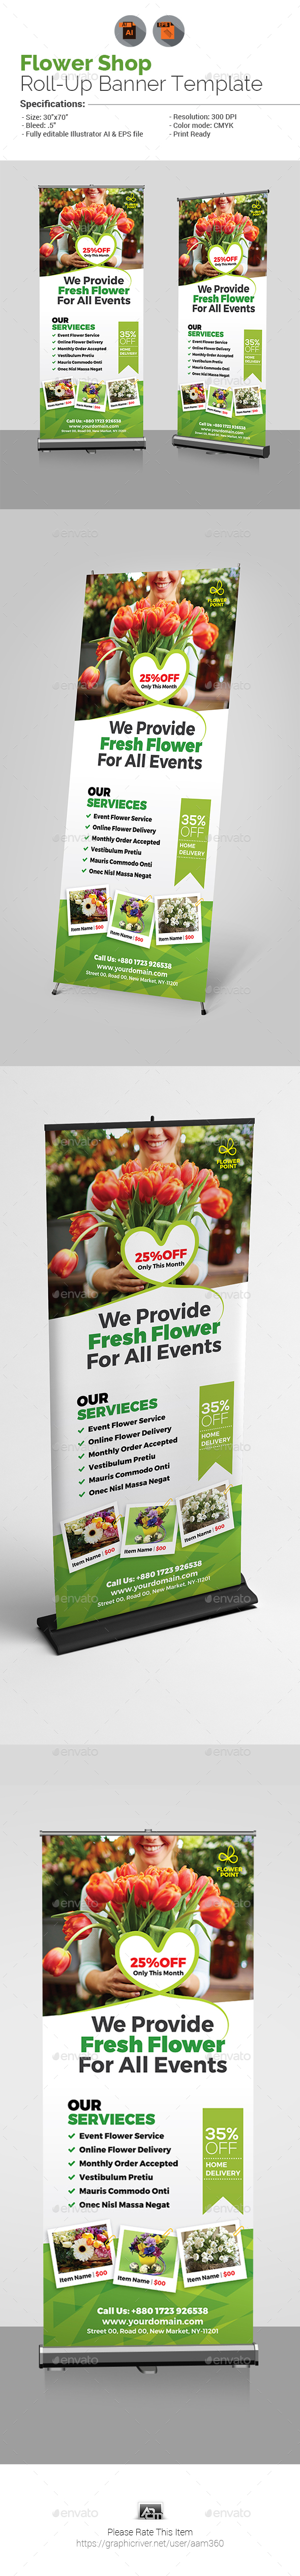 Flower Shop Billboard Template - Signage Print Templates